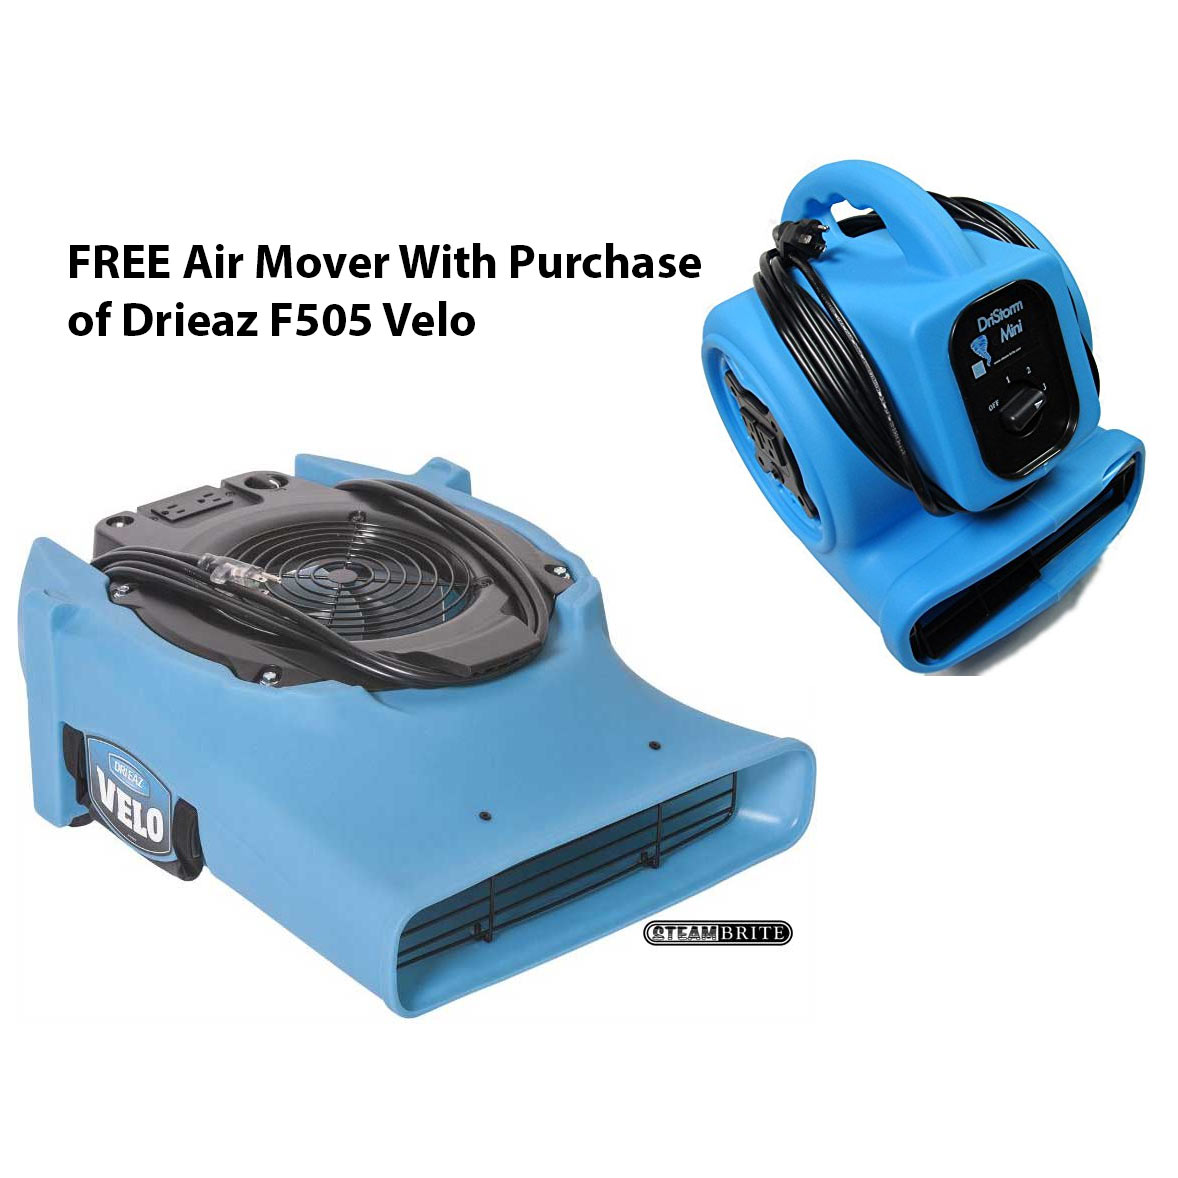 Drieaz F505 FREE Air Mover Offer W Purchase Velo Pro Low Profile Air Mover Variable Speed and Hour Meter AKA Velos